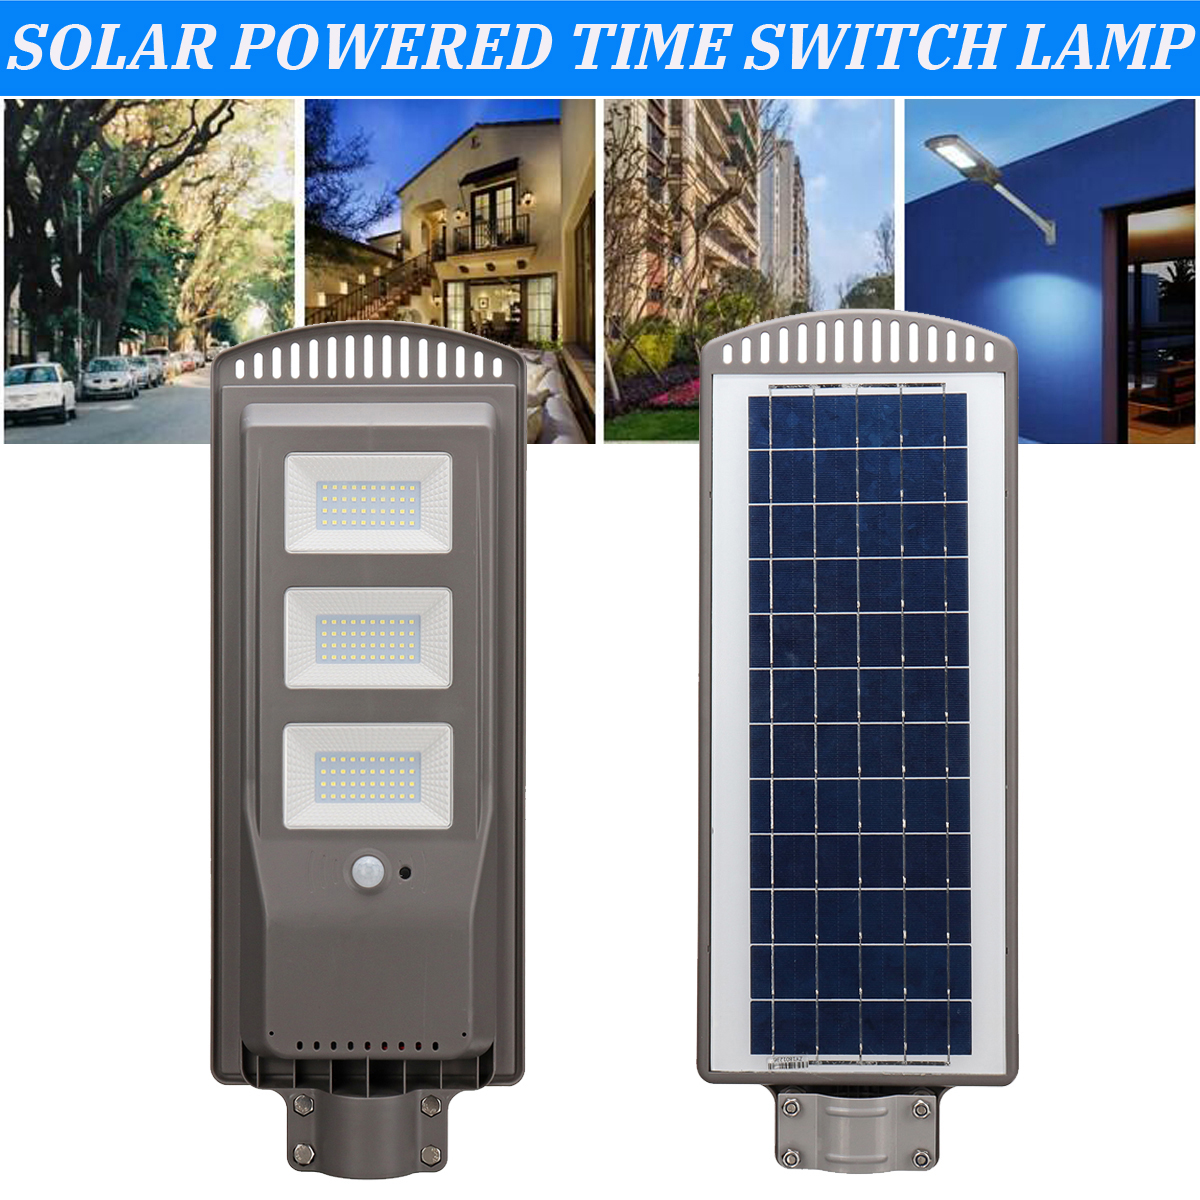 цена на Solar Powered Panel 60W LED Solar Street Light All-in-1 Time Switch Waterproof IP67 Wall Path Lighting Lamp for Outdoor Garden